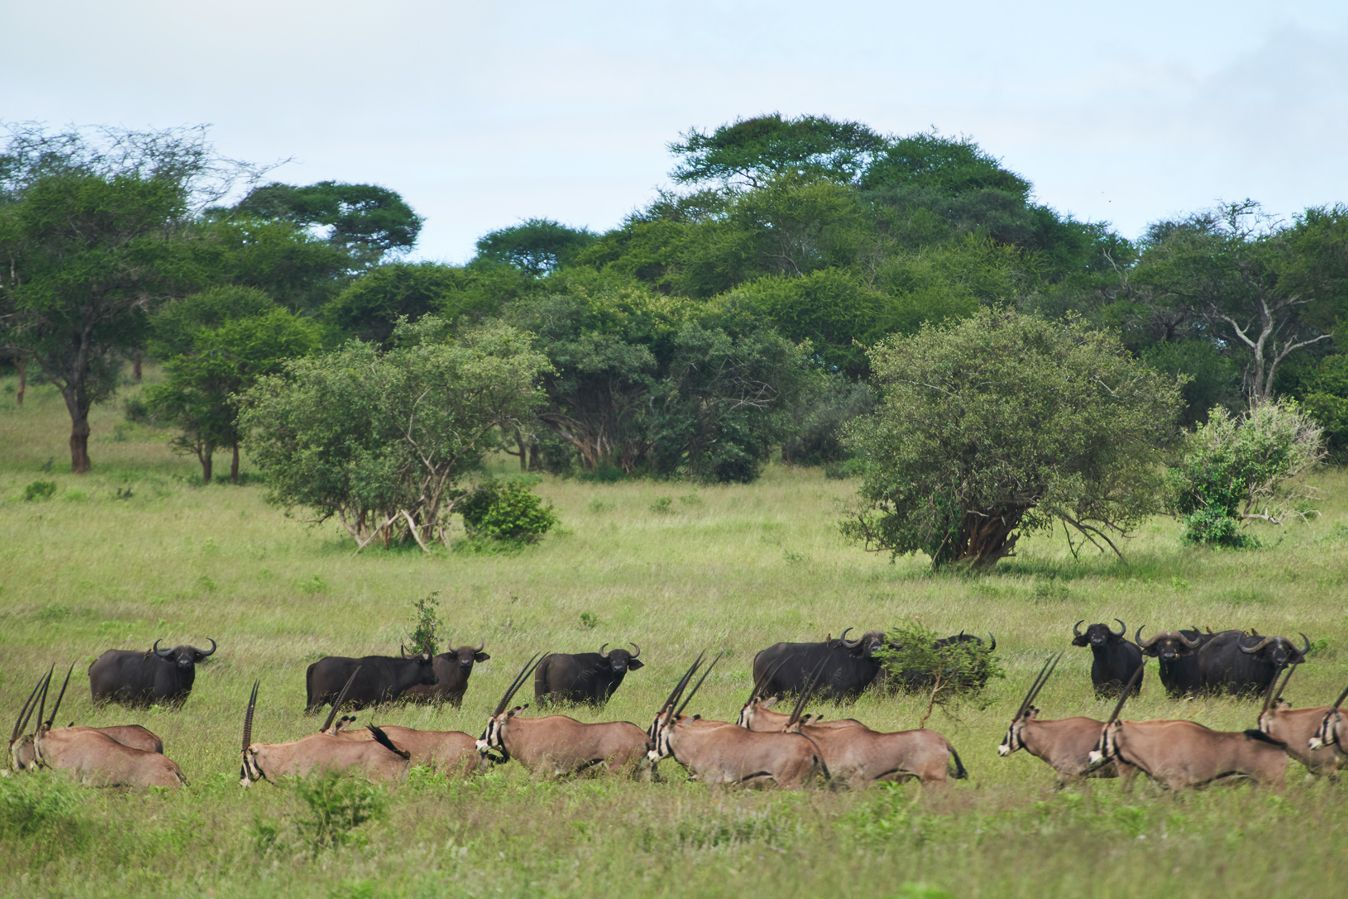 Fringe-eared oryx and buffalo in northern Tanzania